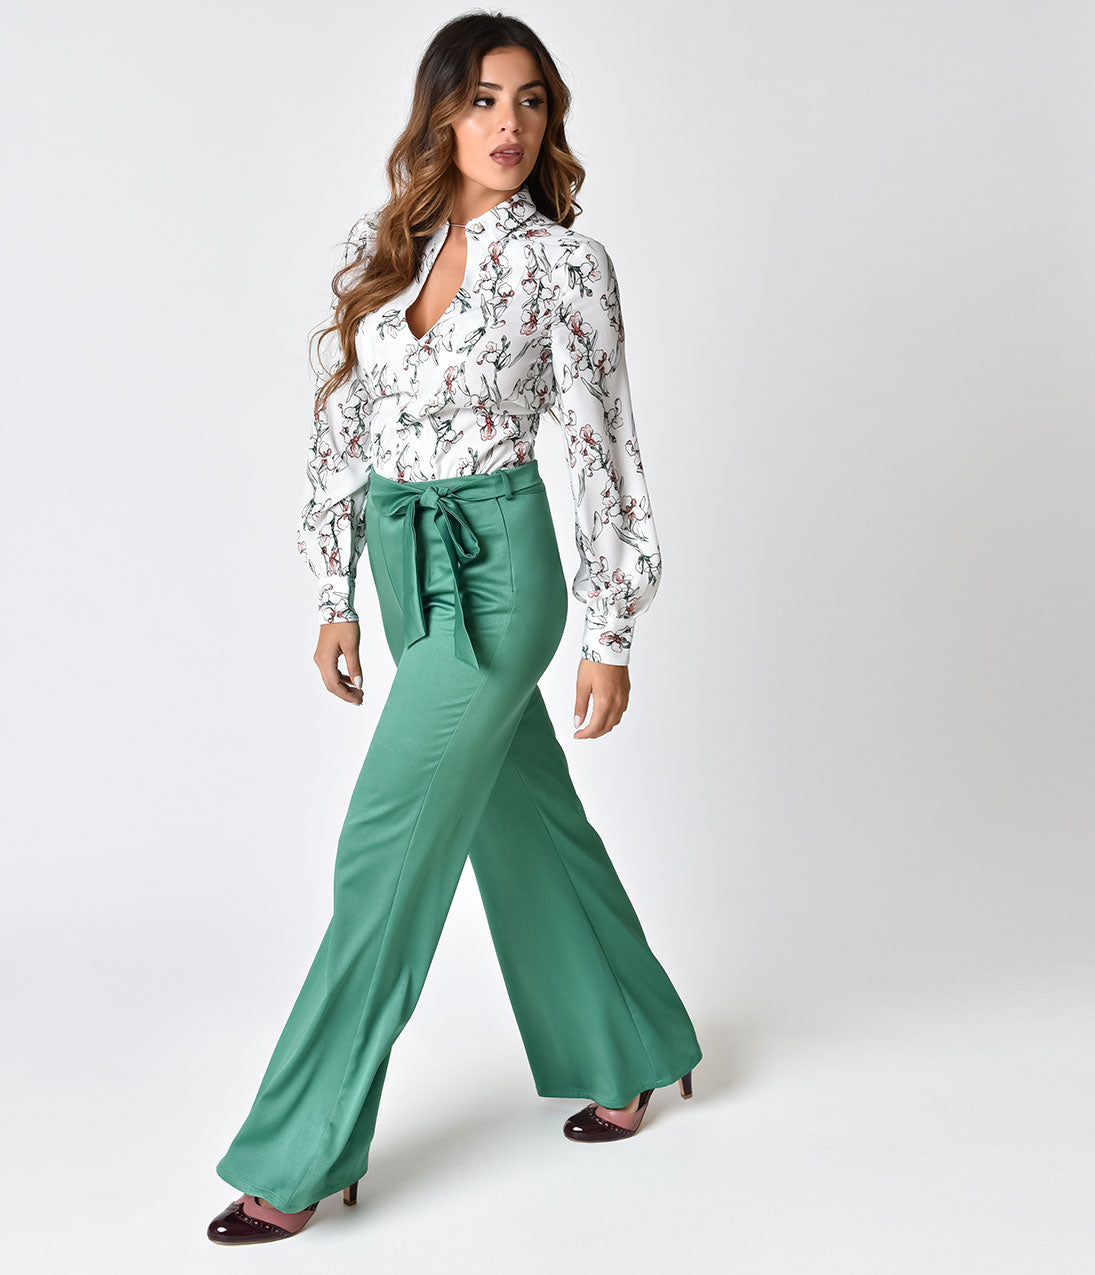 Vintage High Waisted Trousers, Sailor Pants, Jeans 1970s Style Green Bell Bottom Pants $31.00 AT vintagedancer.com